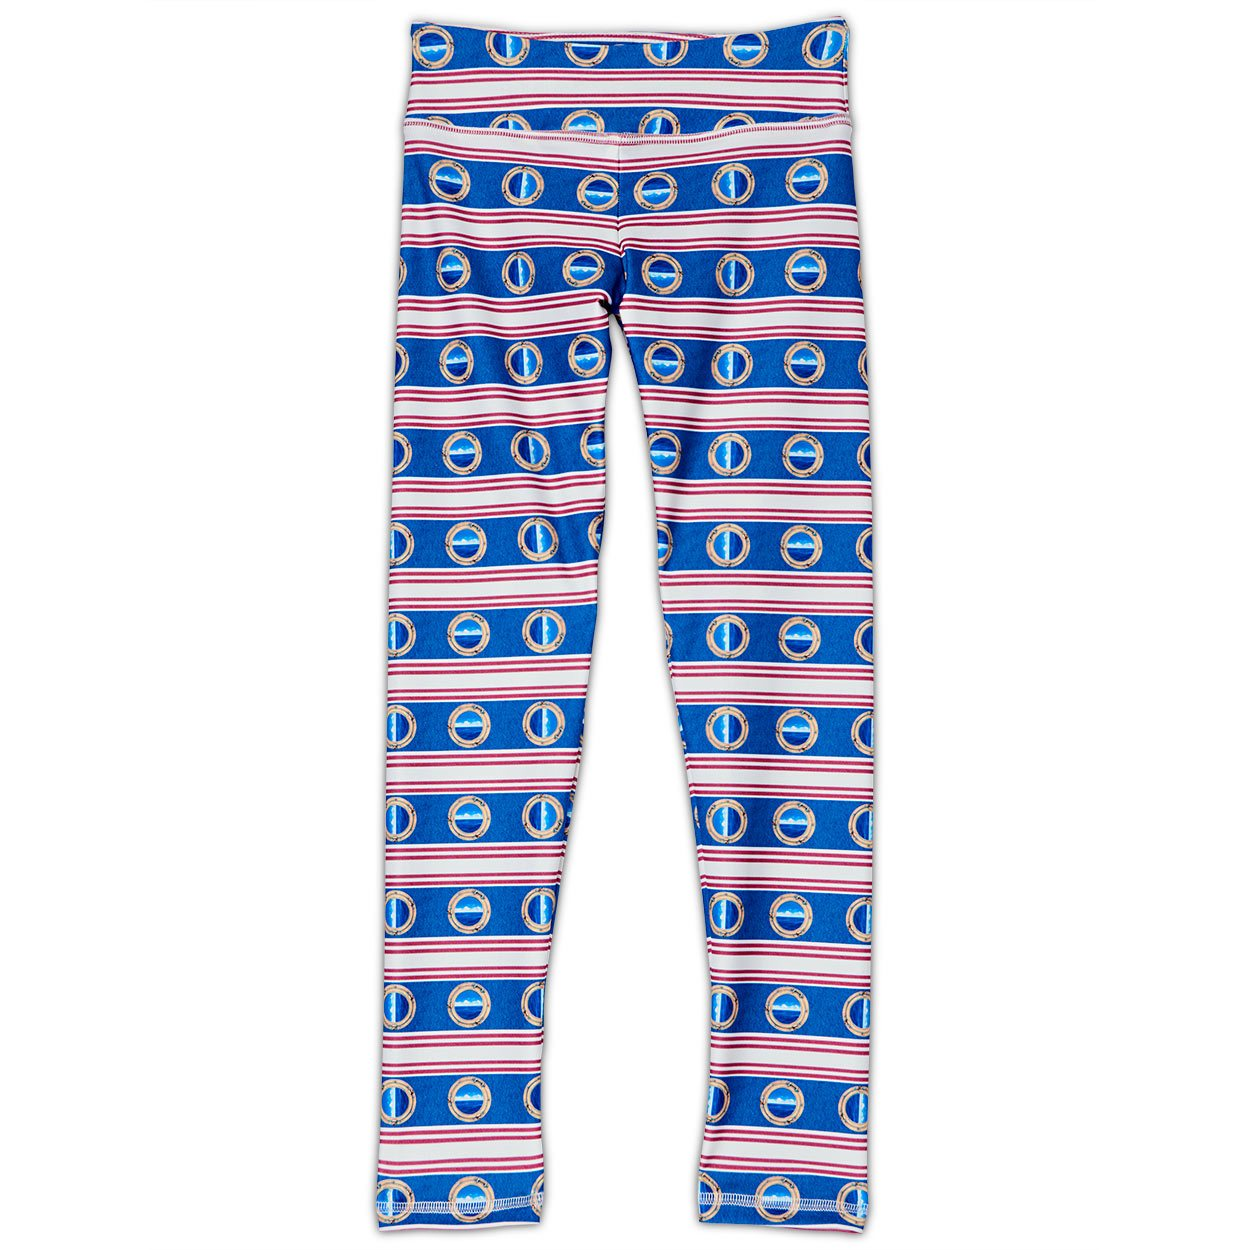 Mariner Hybrid Youth Leggings UPF 50+